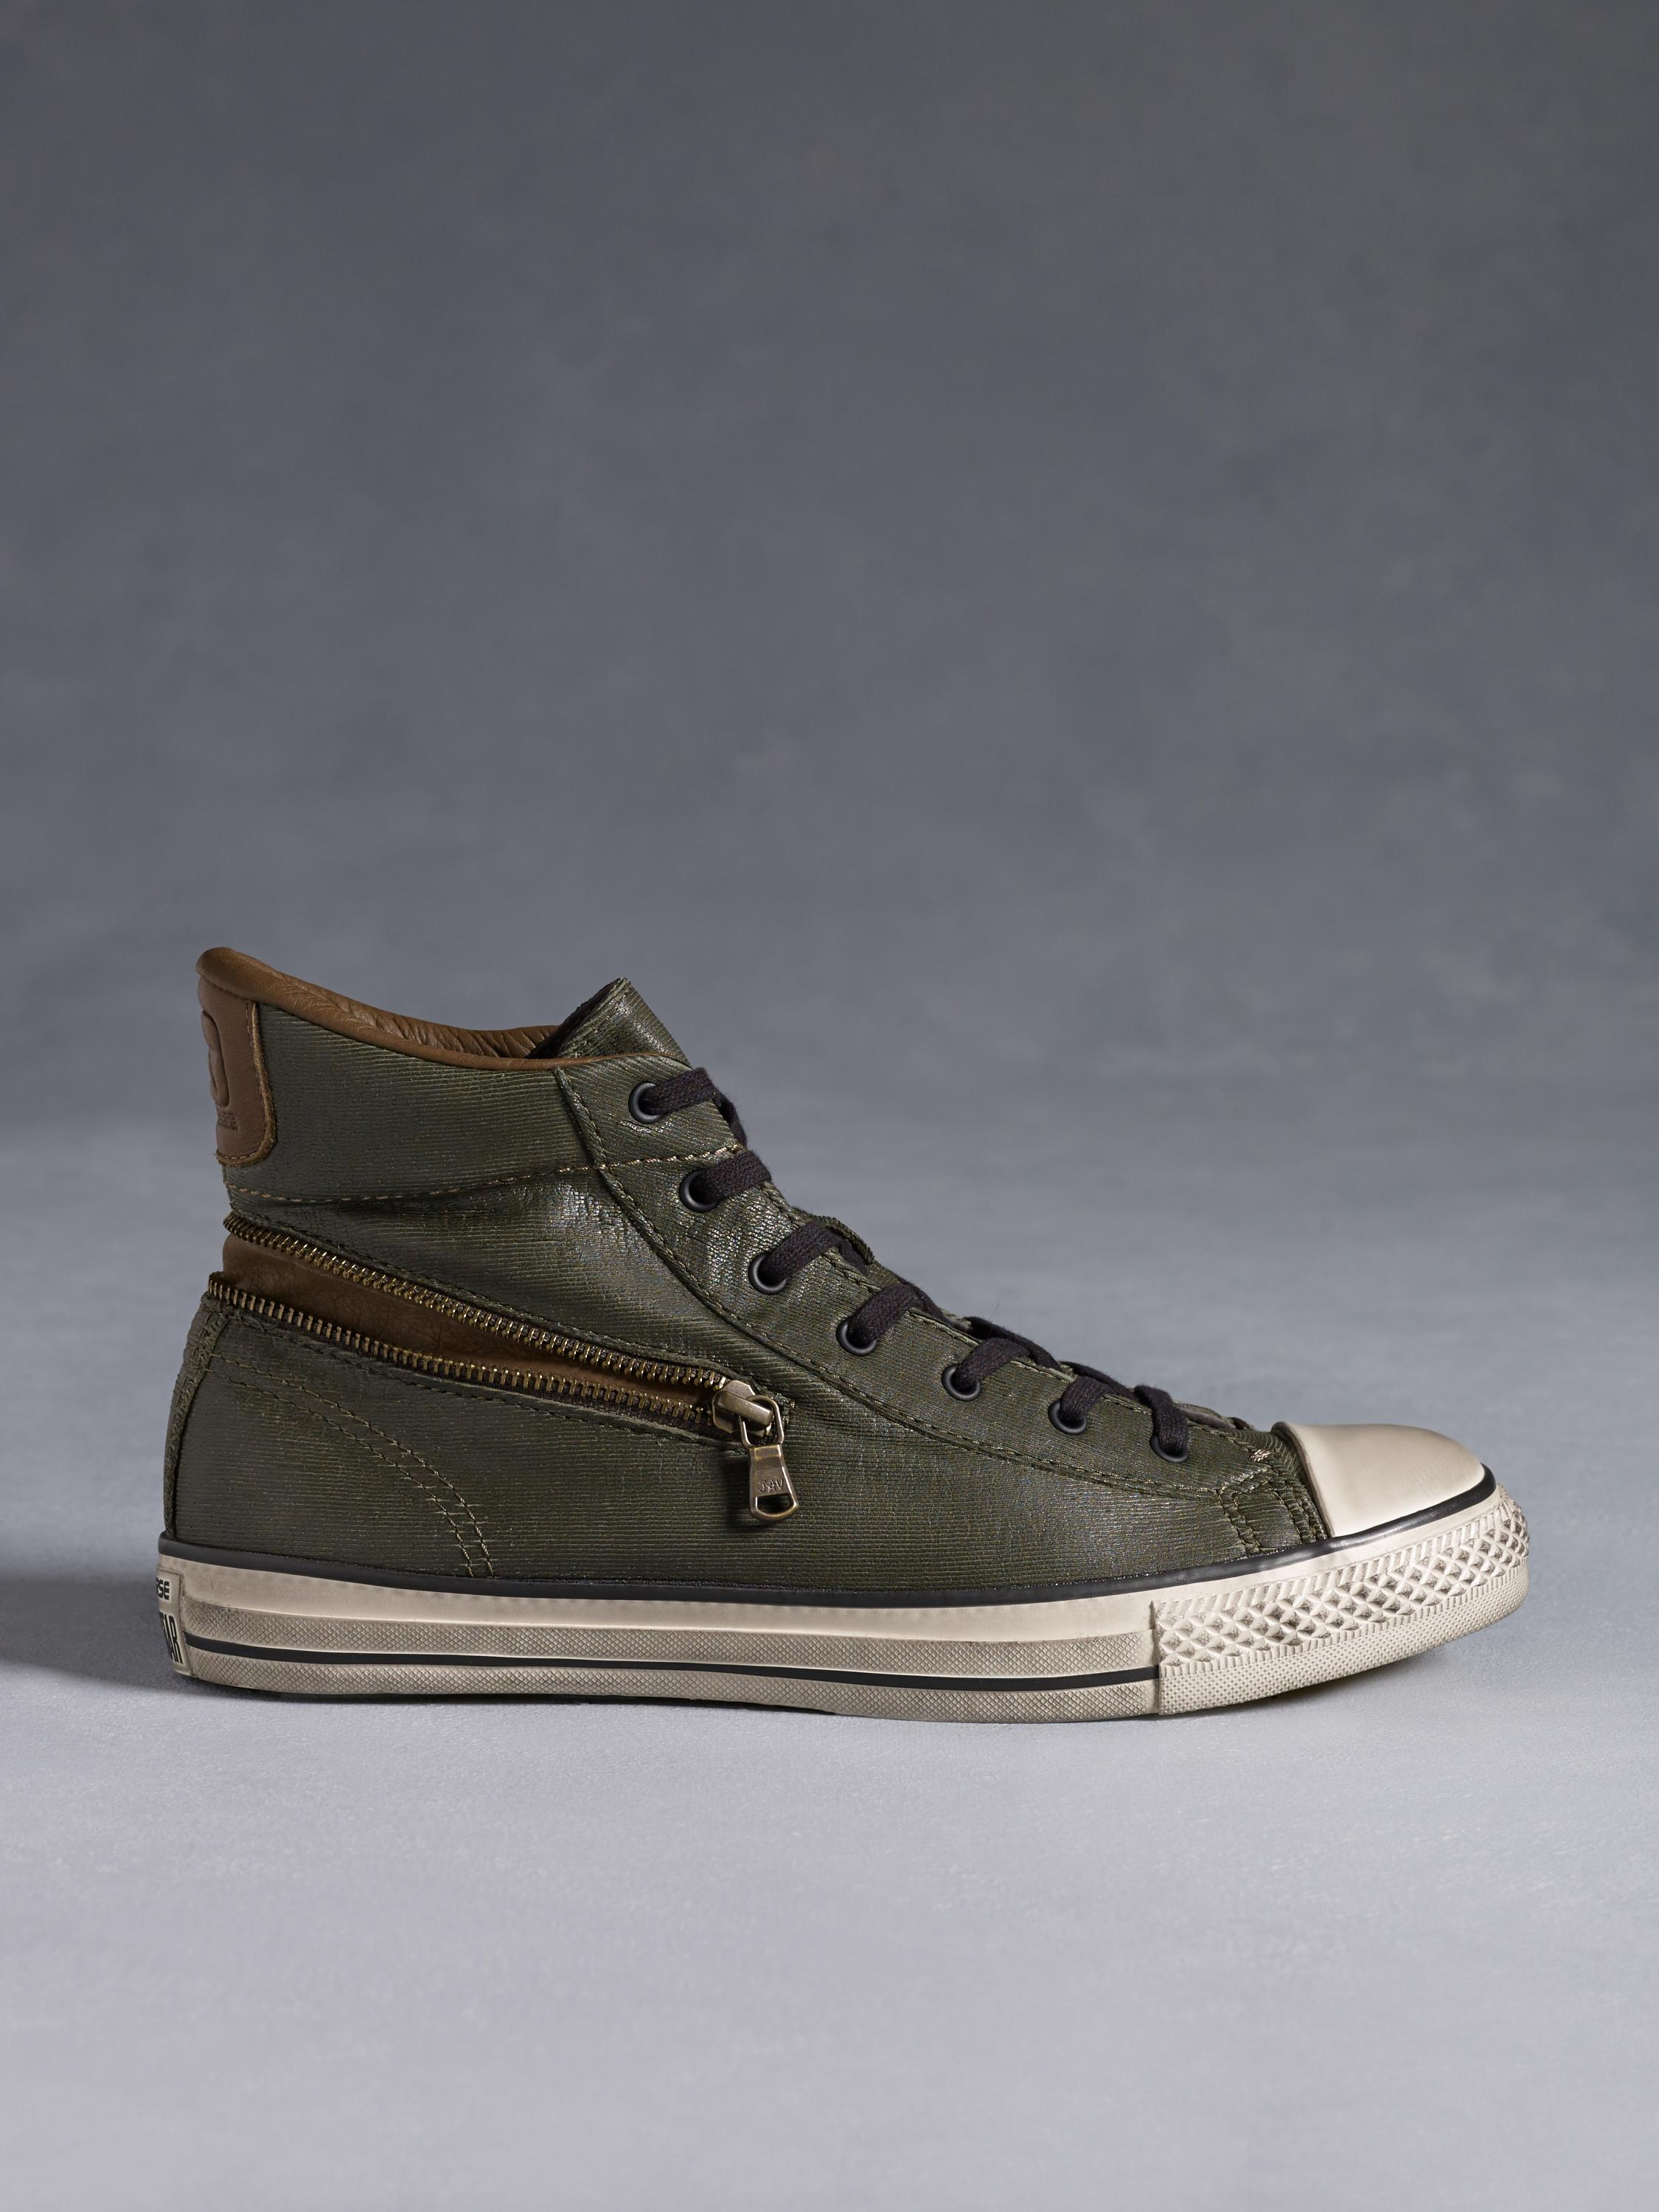 8996972f0e1b John Varvatos Chuck Taylor All Star Back Zip High Top in Green for ...